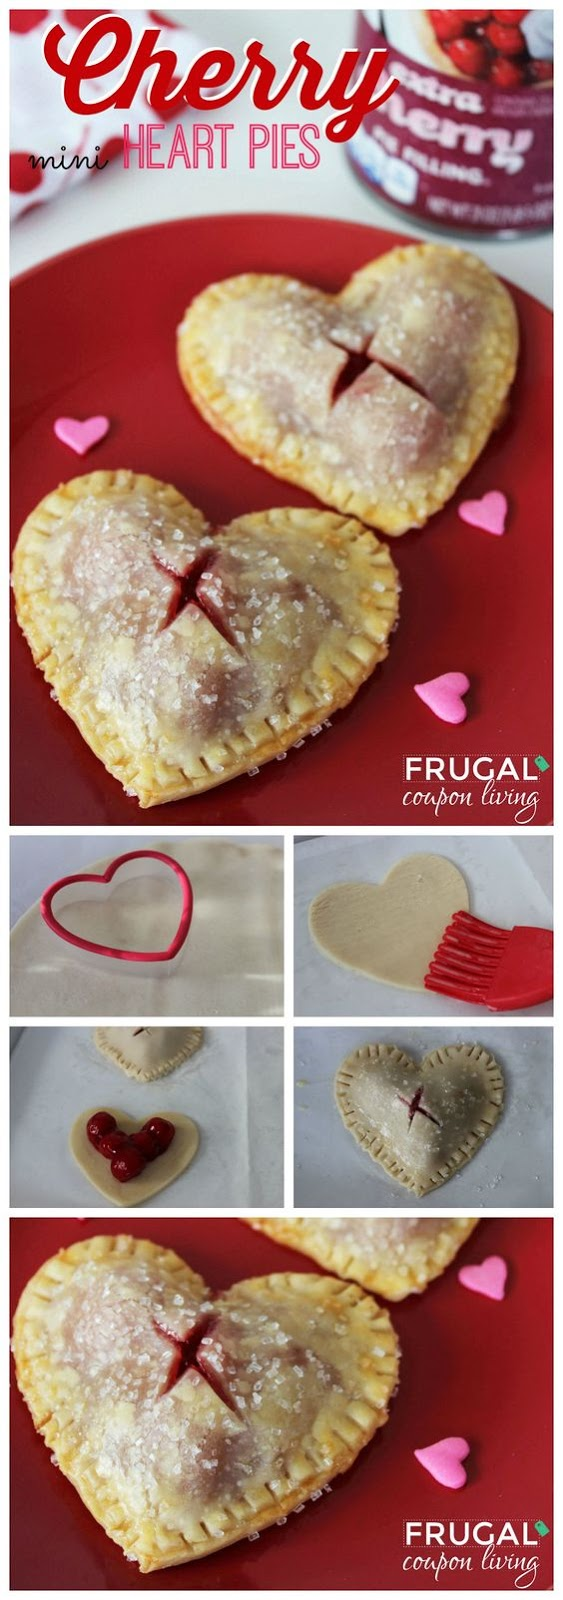 VALENTINE'S DAY MINI CHERRY HEART PIES #VALENTINE #DESSERT #SNACK